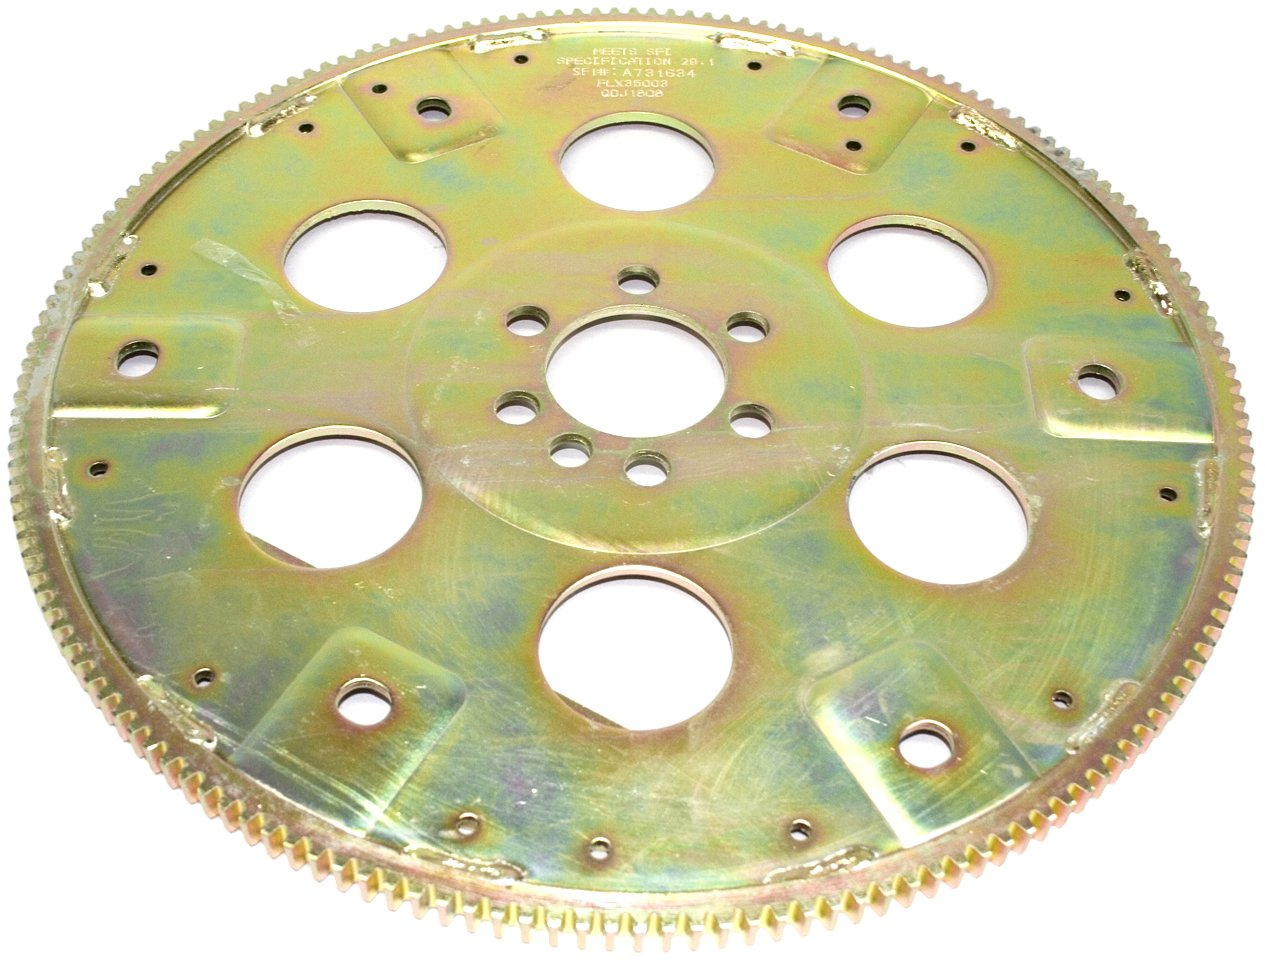 PRW 1835003 SFI-Rated External Balance 168 Teeth Chromoly Steel Flexplate for Chevy 350 1986-97 Late by PRW